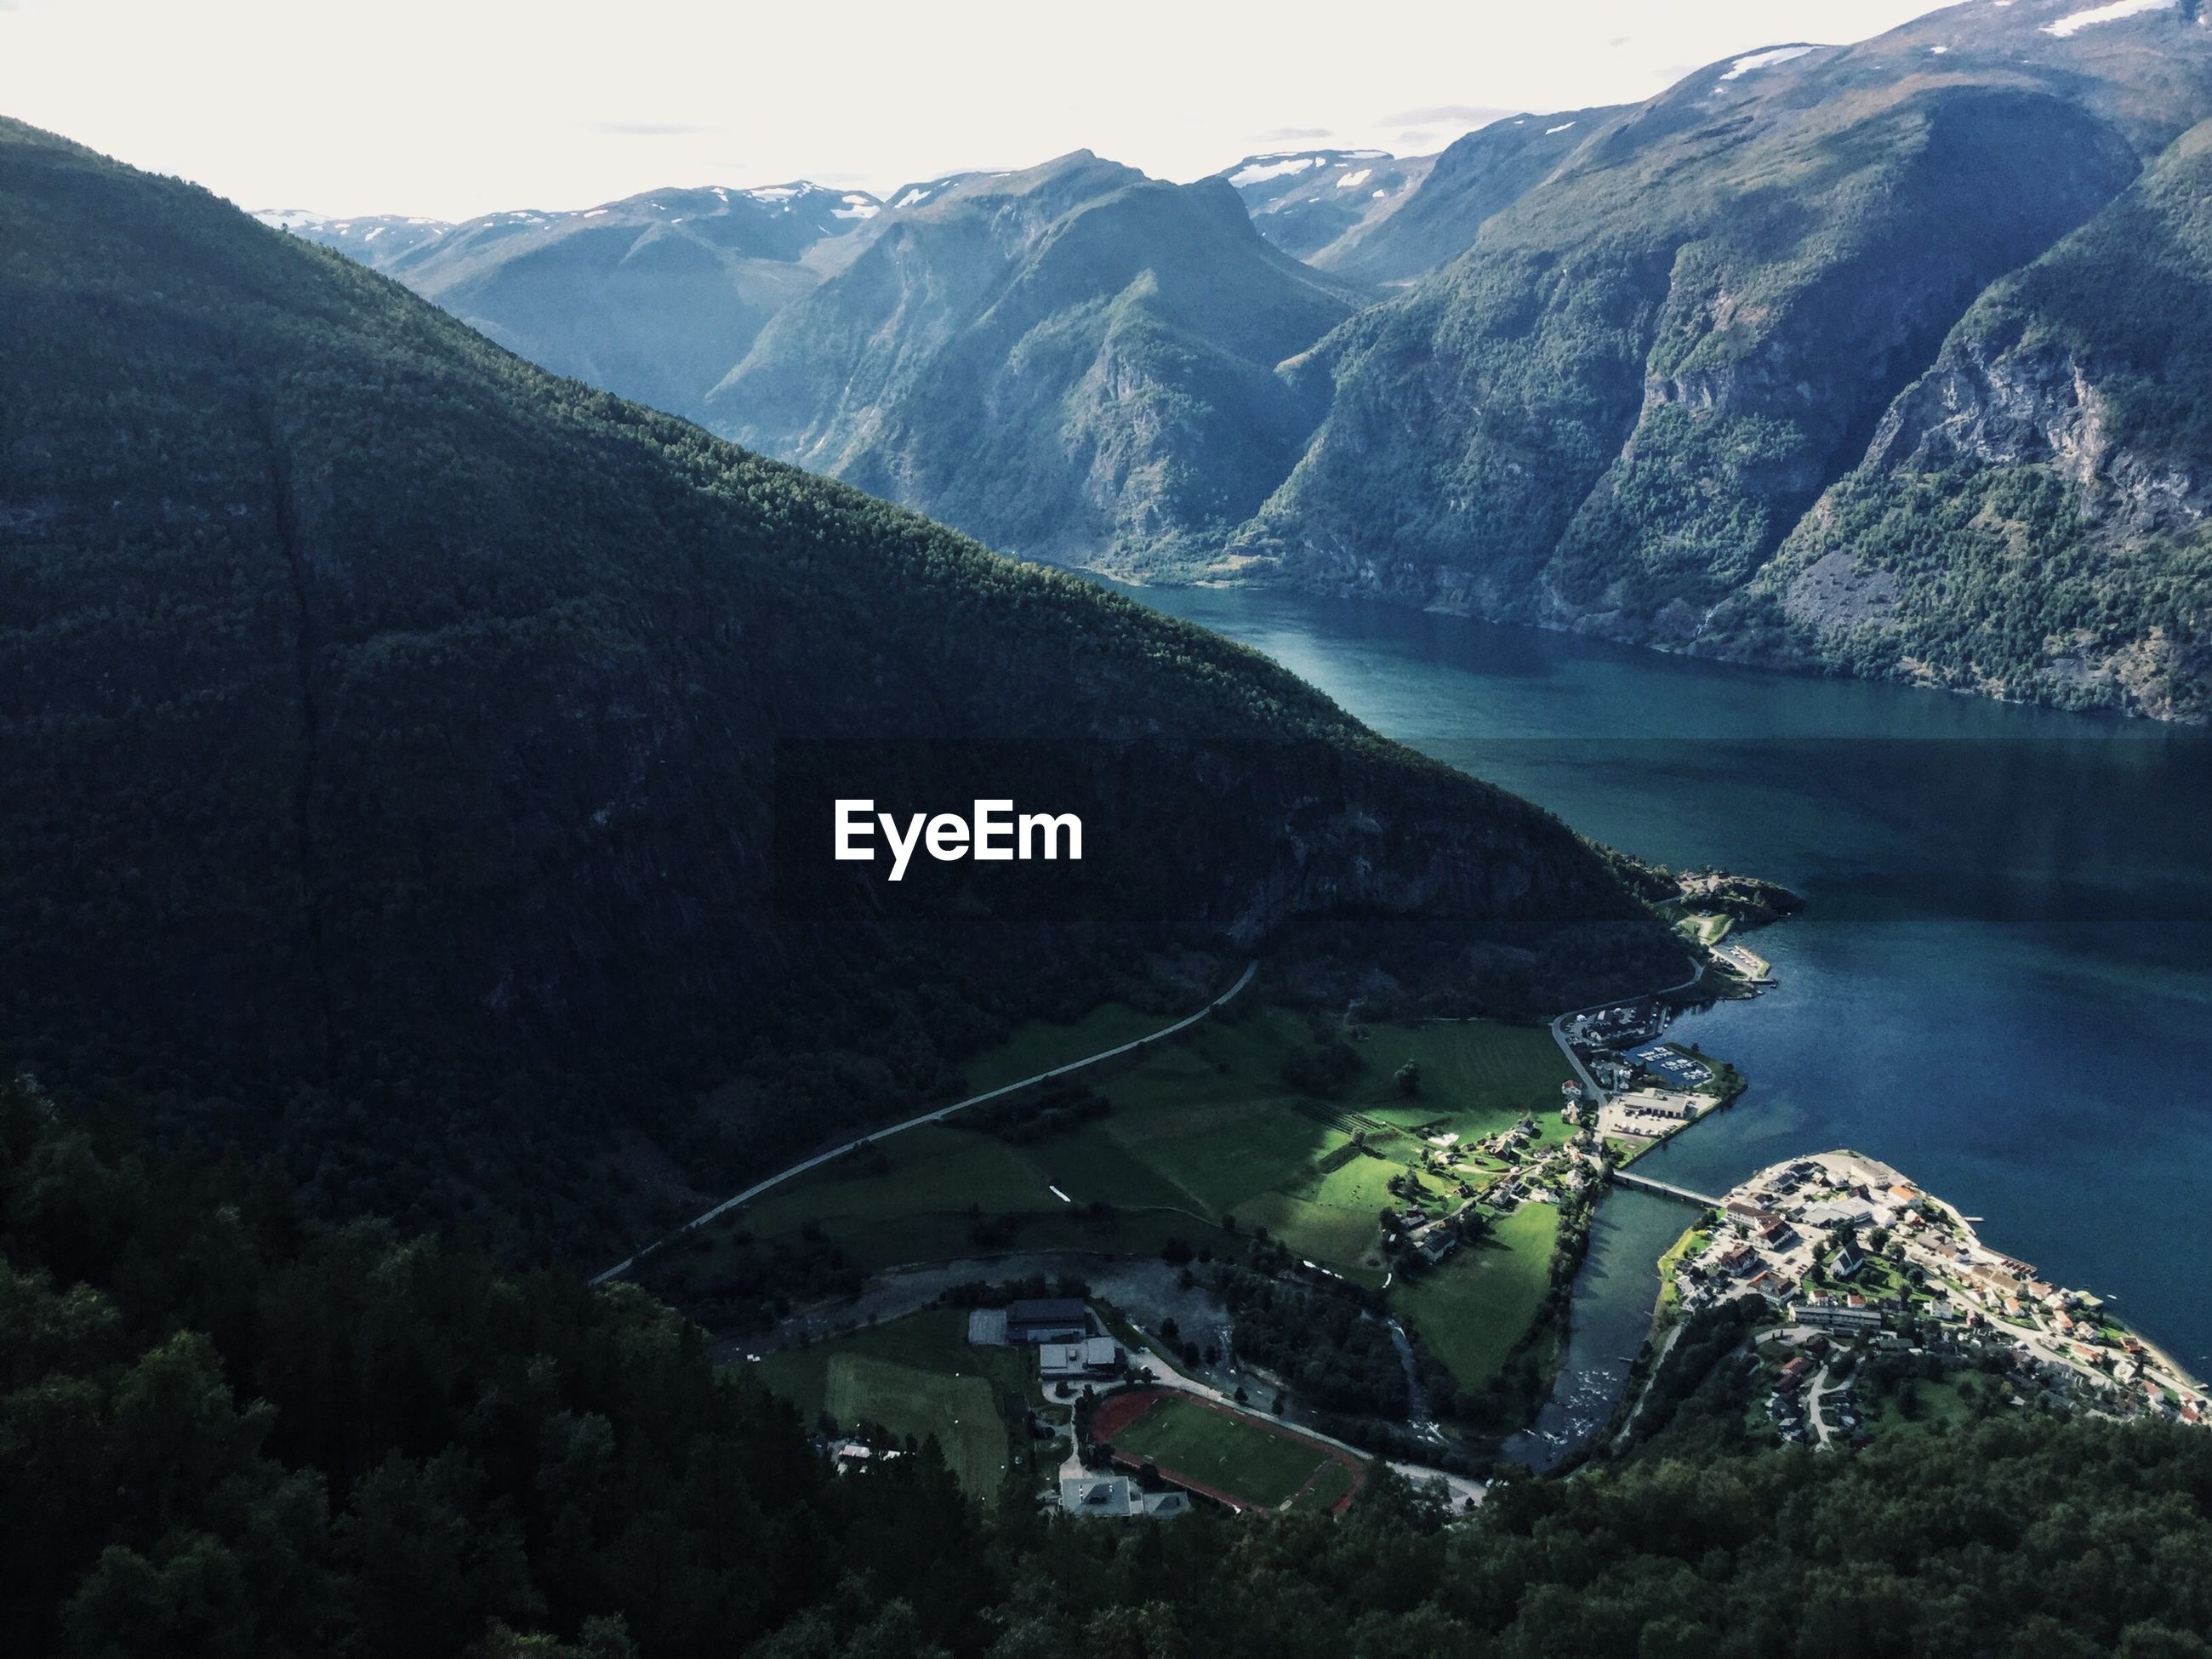 HIGH ANGLE VIEW OF LAKE AGAINST MOUNTAINS